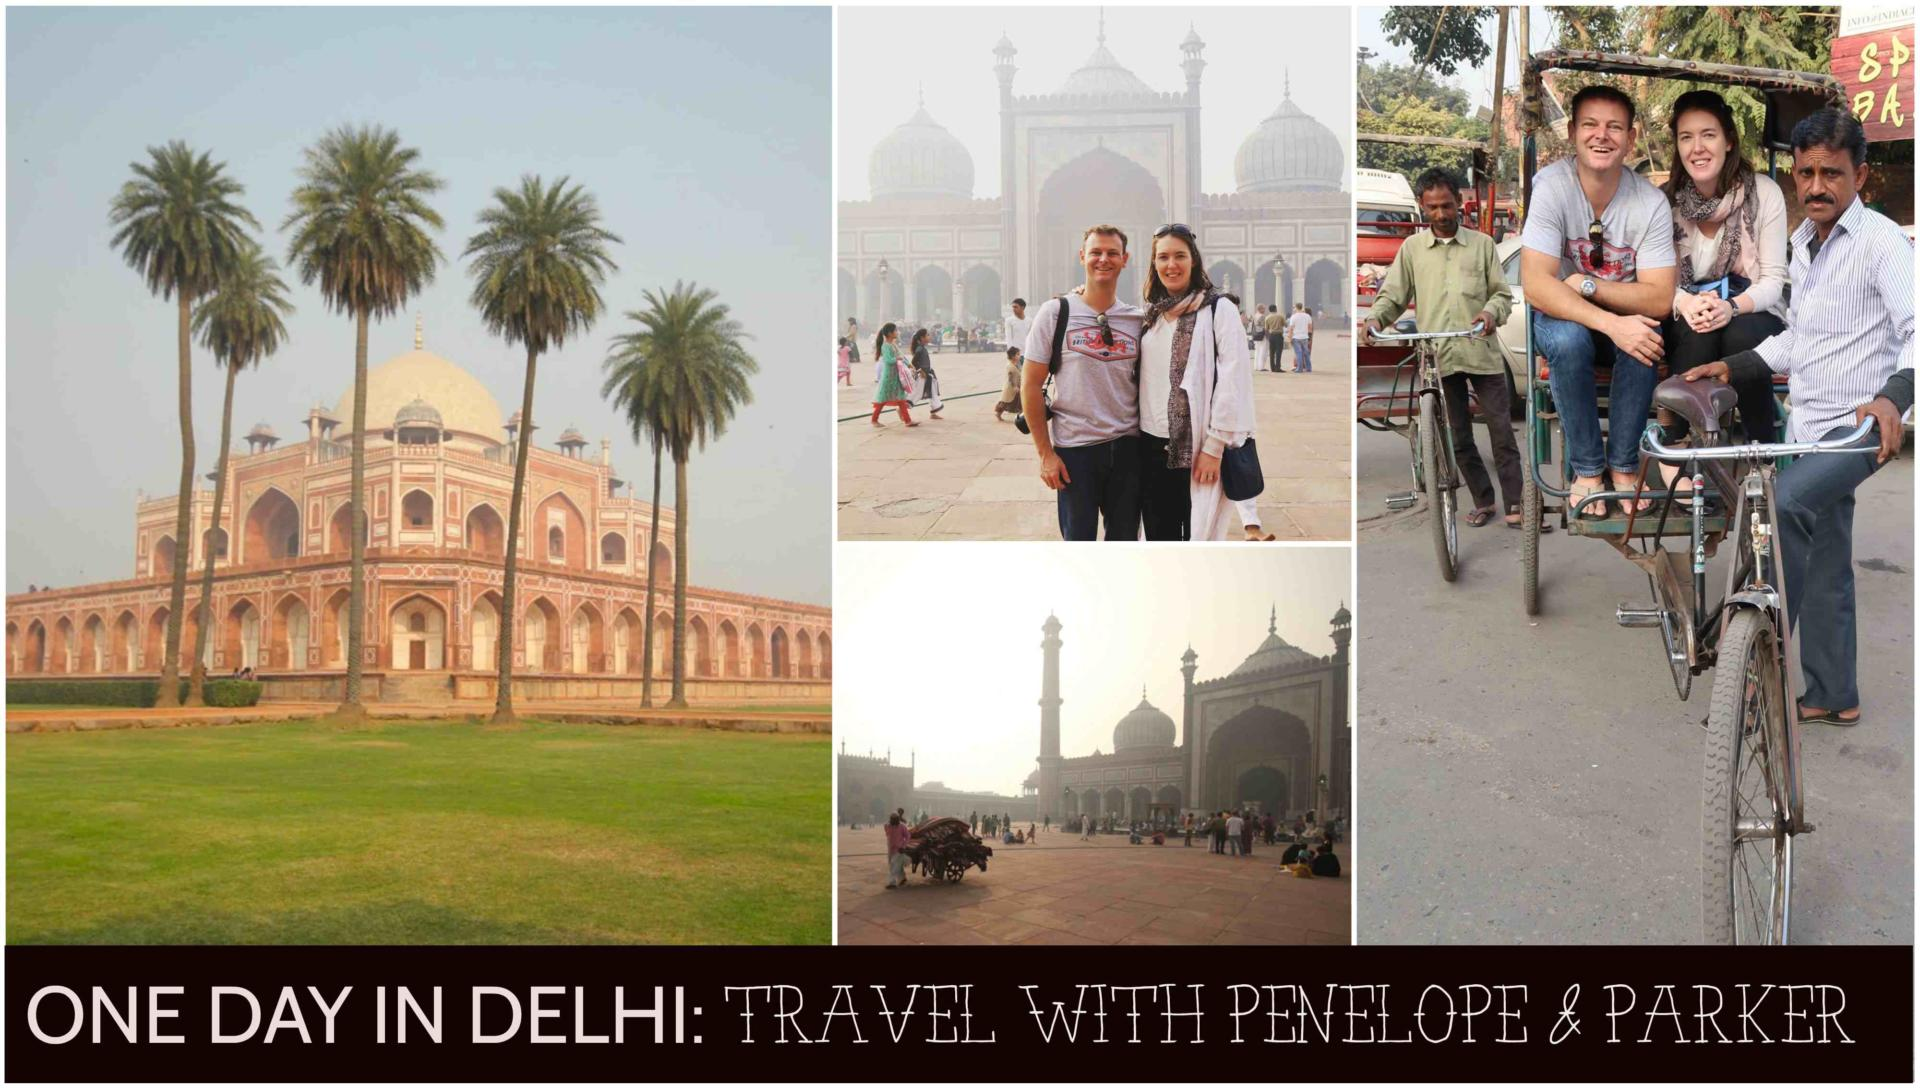 One day in Delhi - Travel with Penelope and Parker